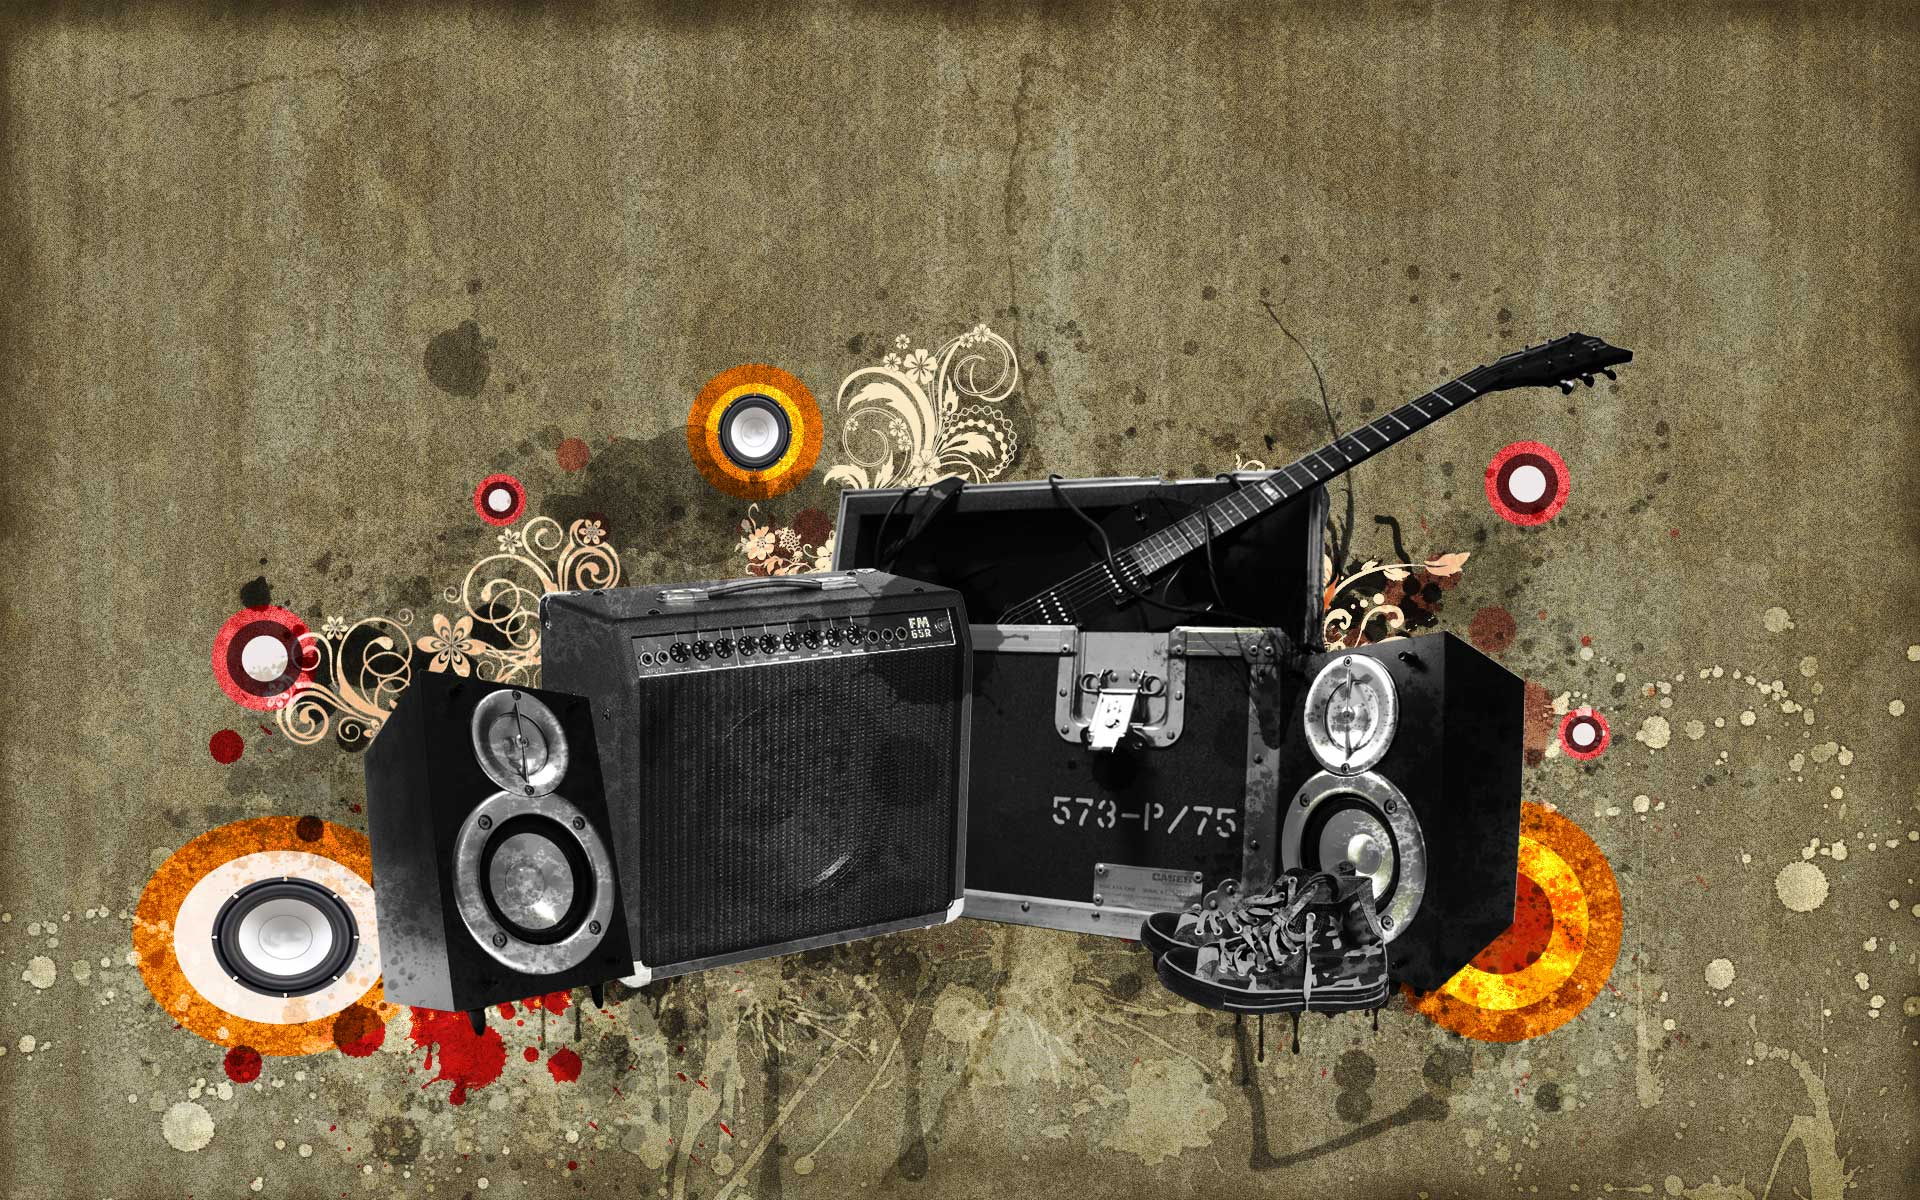 wallpaper create awesome music art cool images adobephotoshop 1920x1200